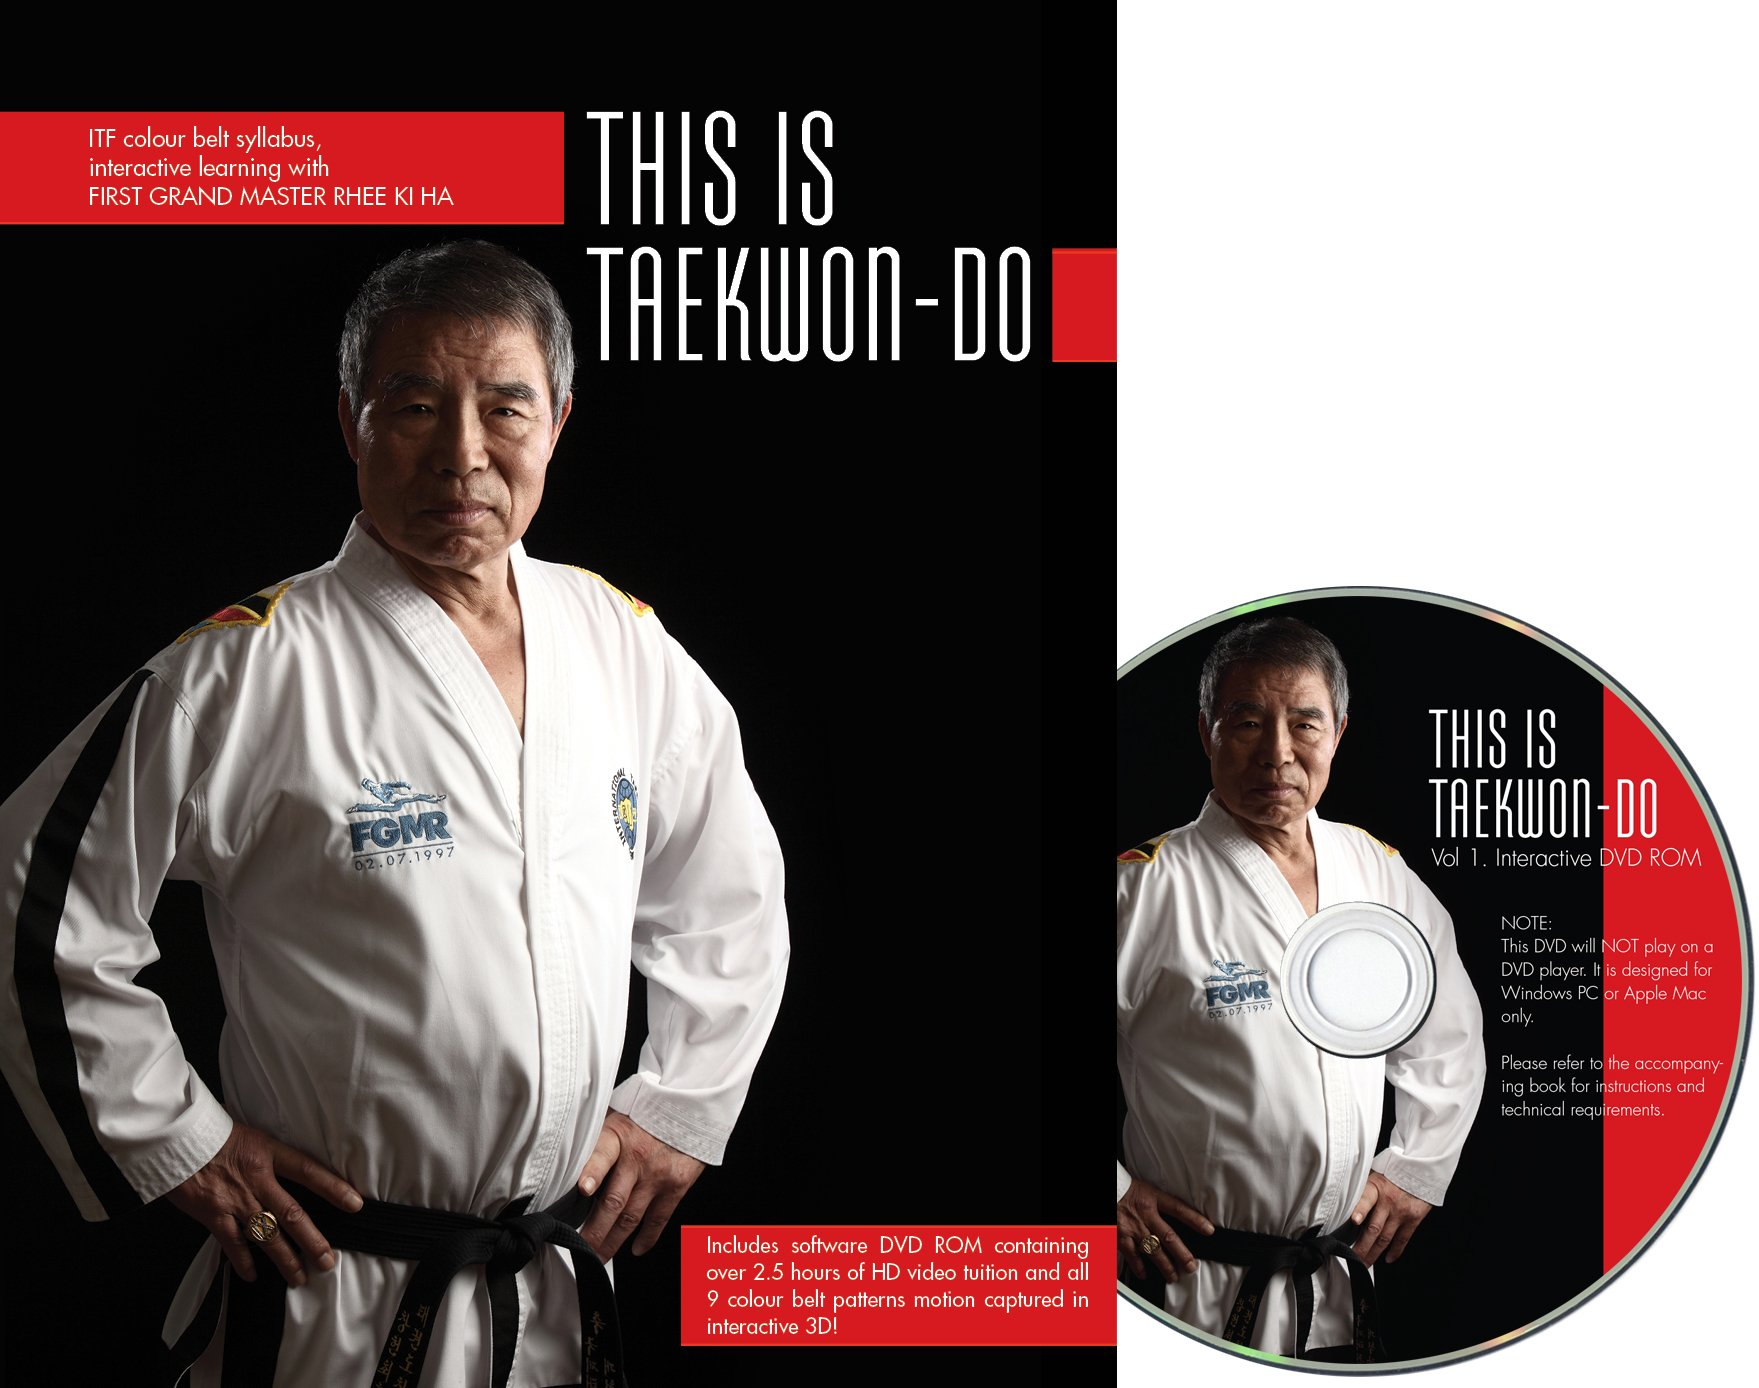 This is TAEKWON-DO